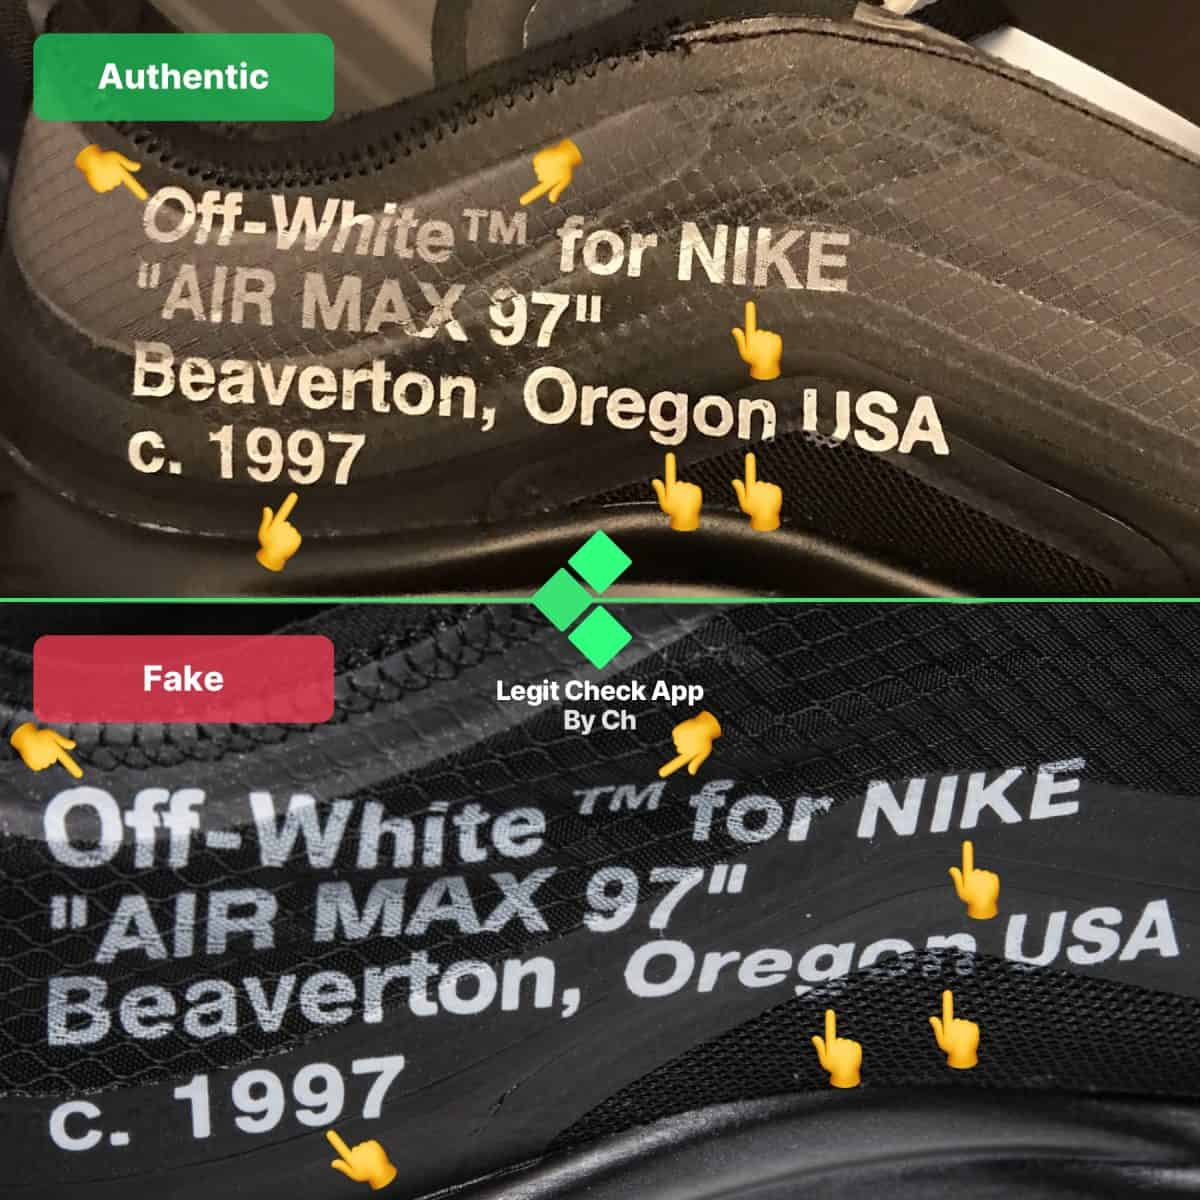 Off-White Air Max 97 Black Real Vs Fake Guide - Legit Check By Ch